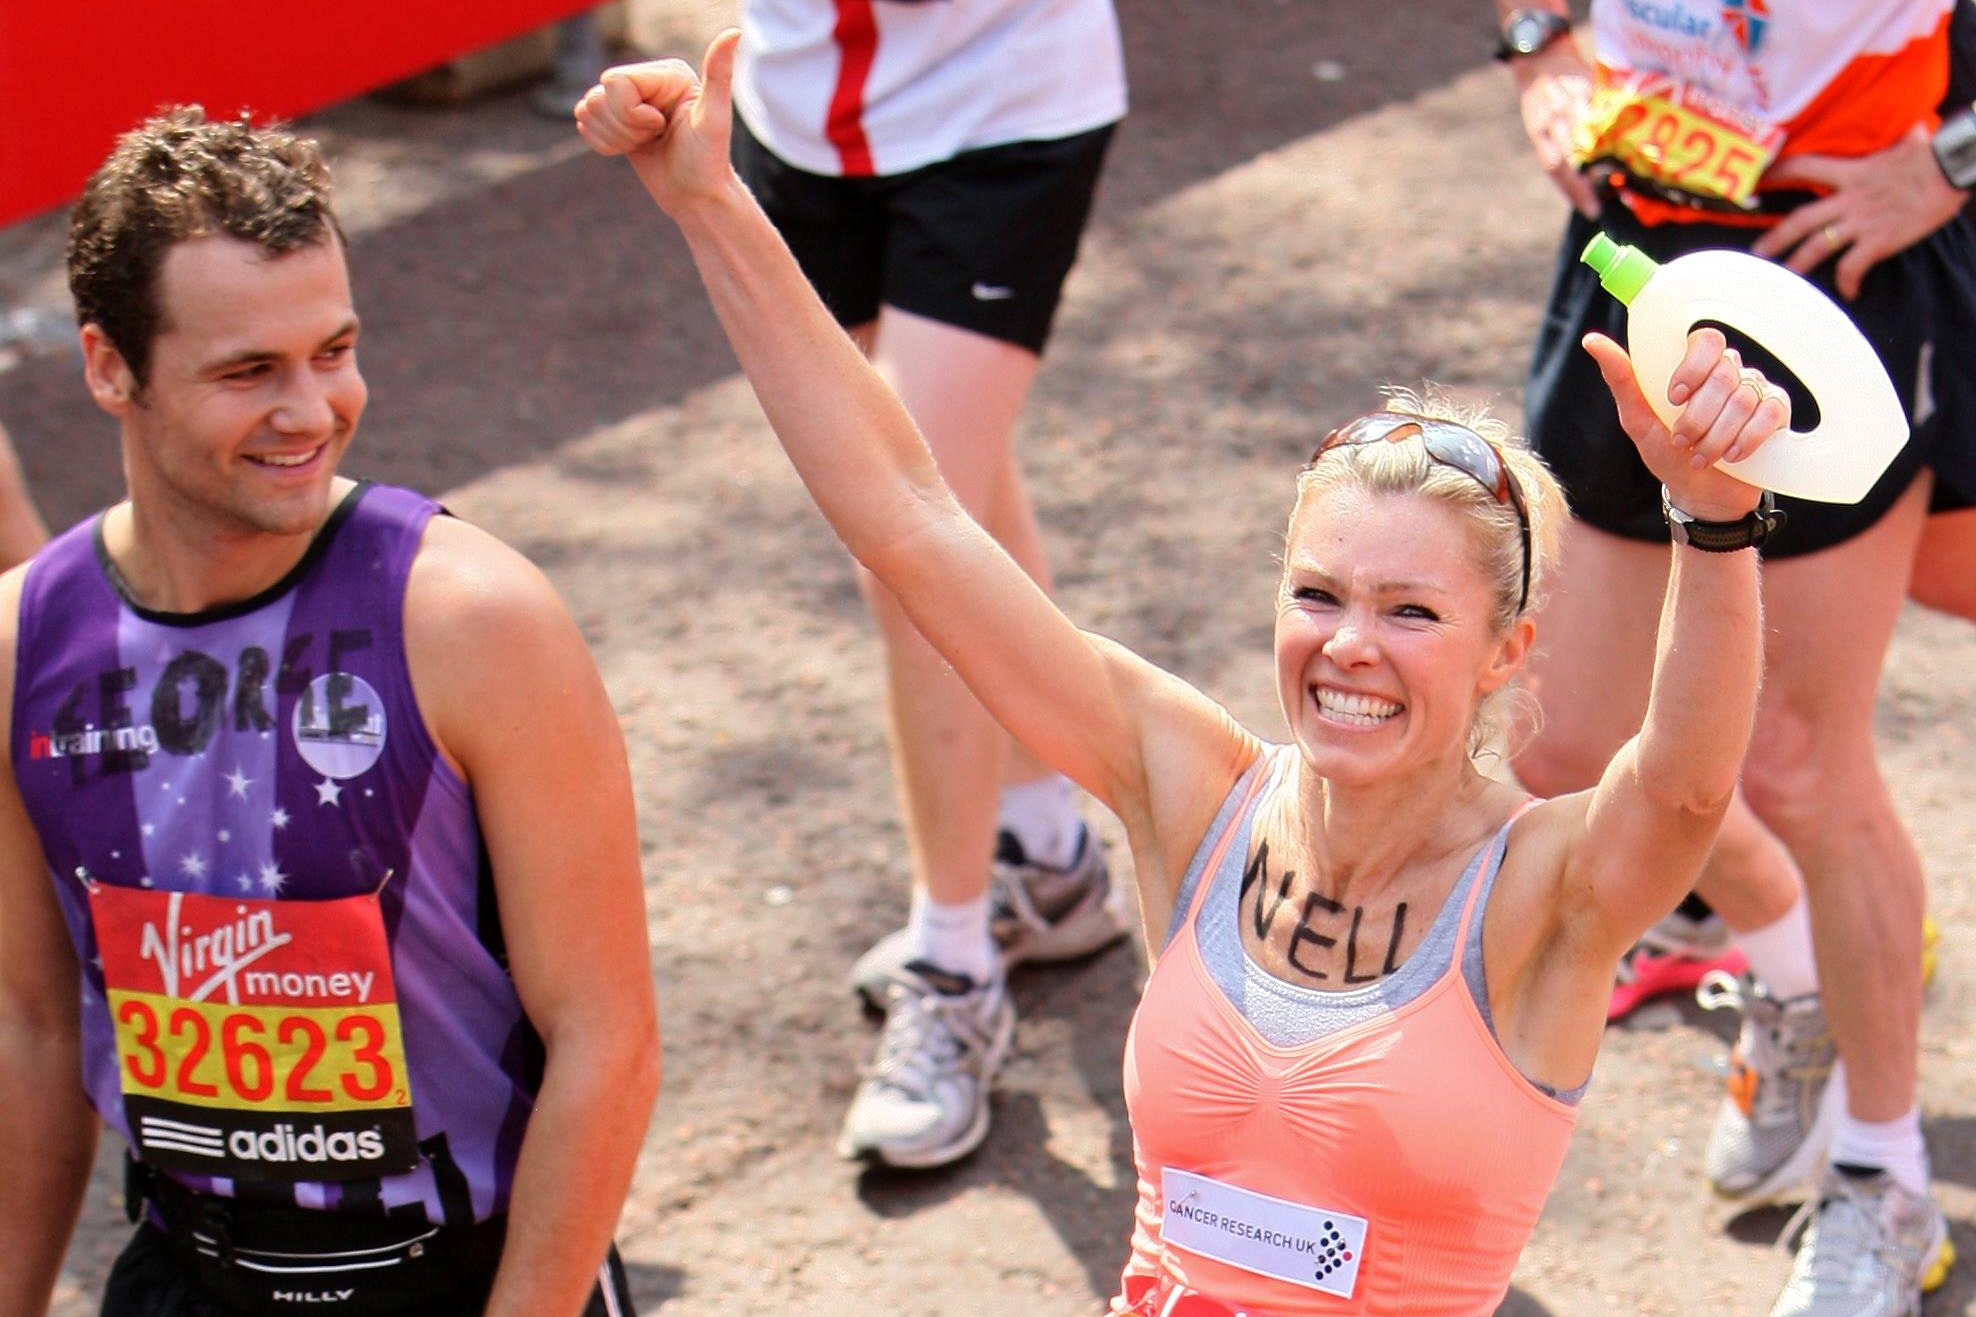 Nell McAndrew after finishing the 2011 Virgin Money London Marathon